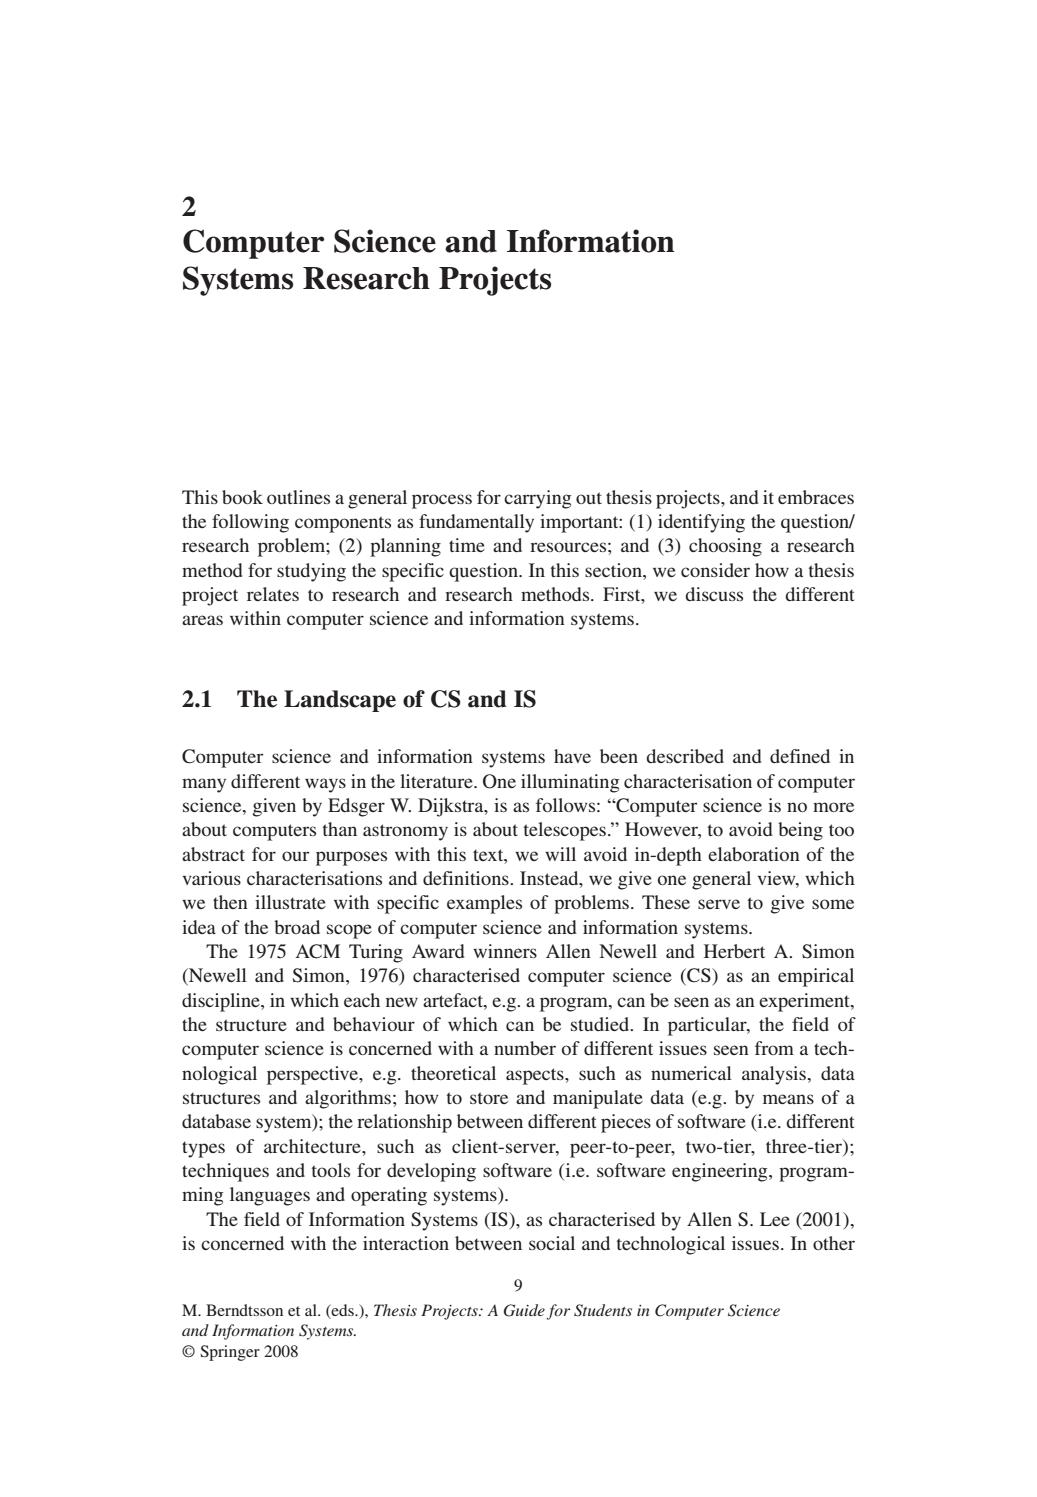 Thesis projects a guide for students in computer science buy world literature dissertation methodology